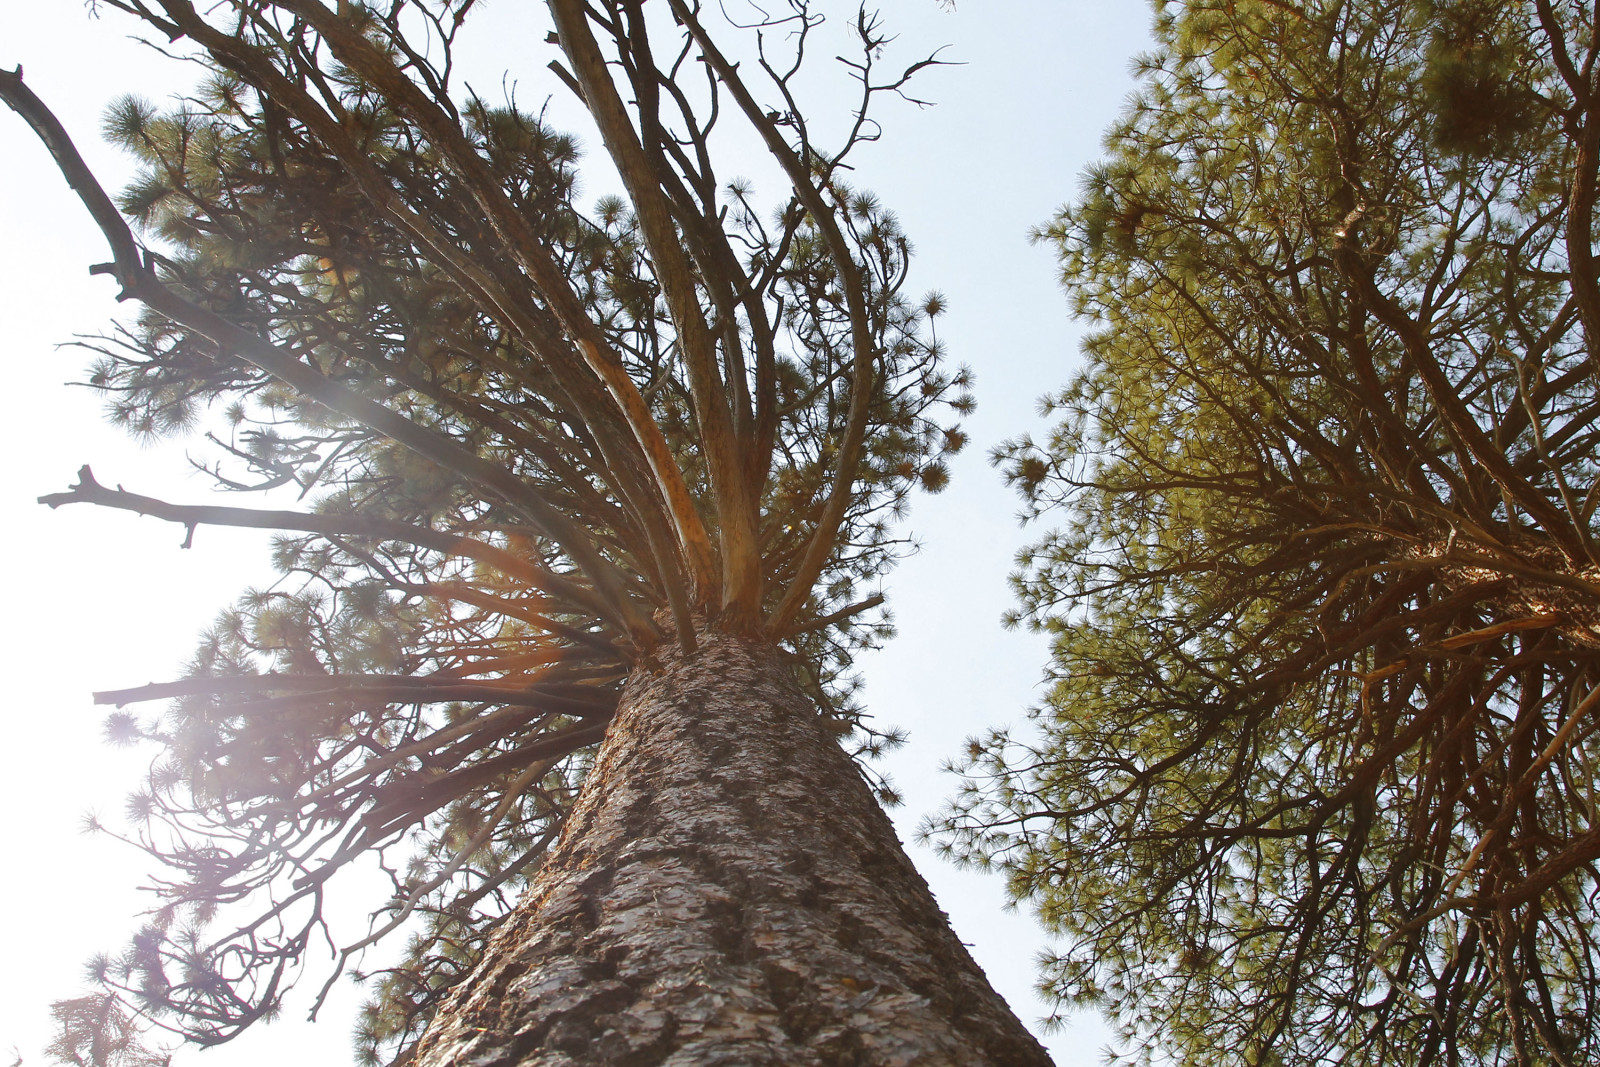 Looking skyward at the towering ponderosa pines in Sierra National Forest. (Cristina Woodworth)